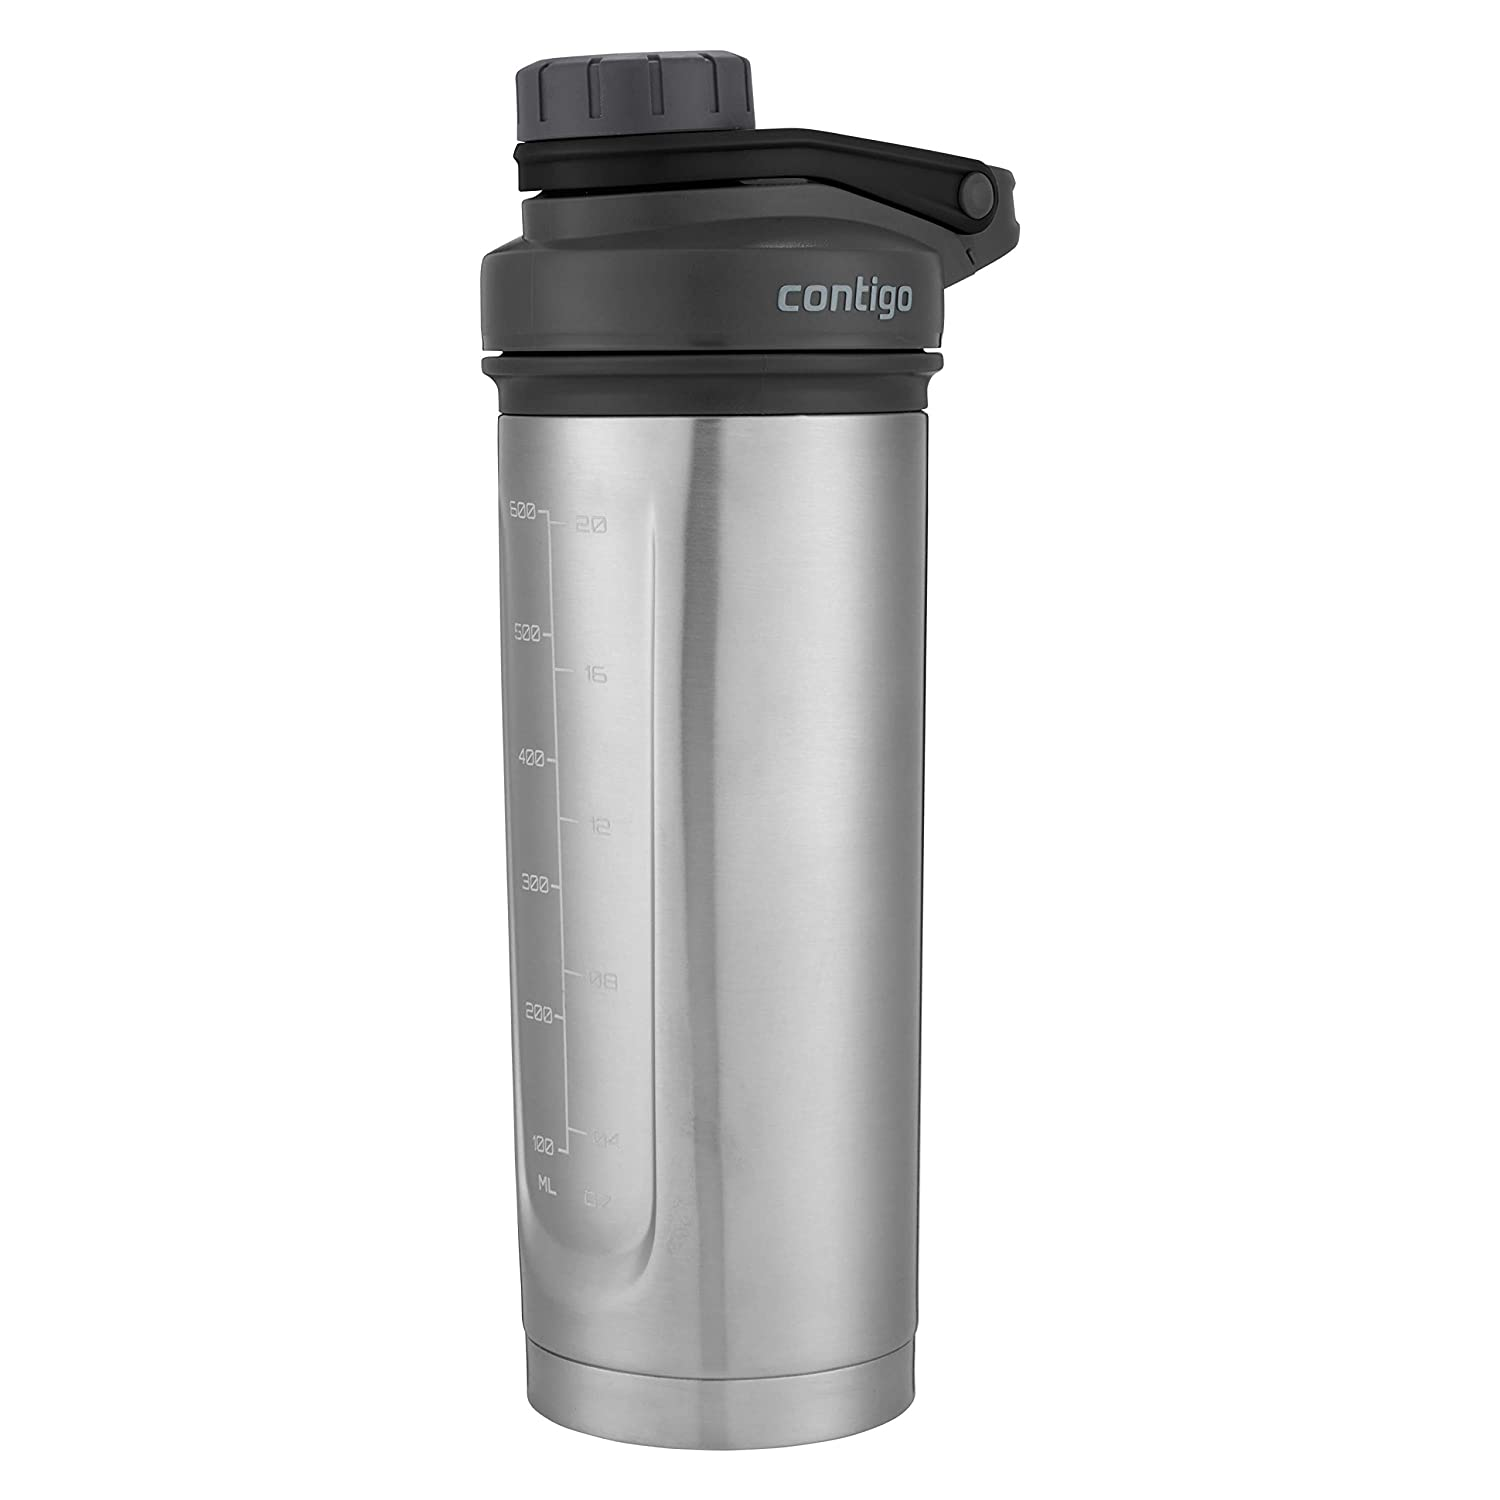 Contigo Vacuum-Insulated Shake & Go Fit Stainless Steel Shaker Bottle, 24 oz, Grey/Black